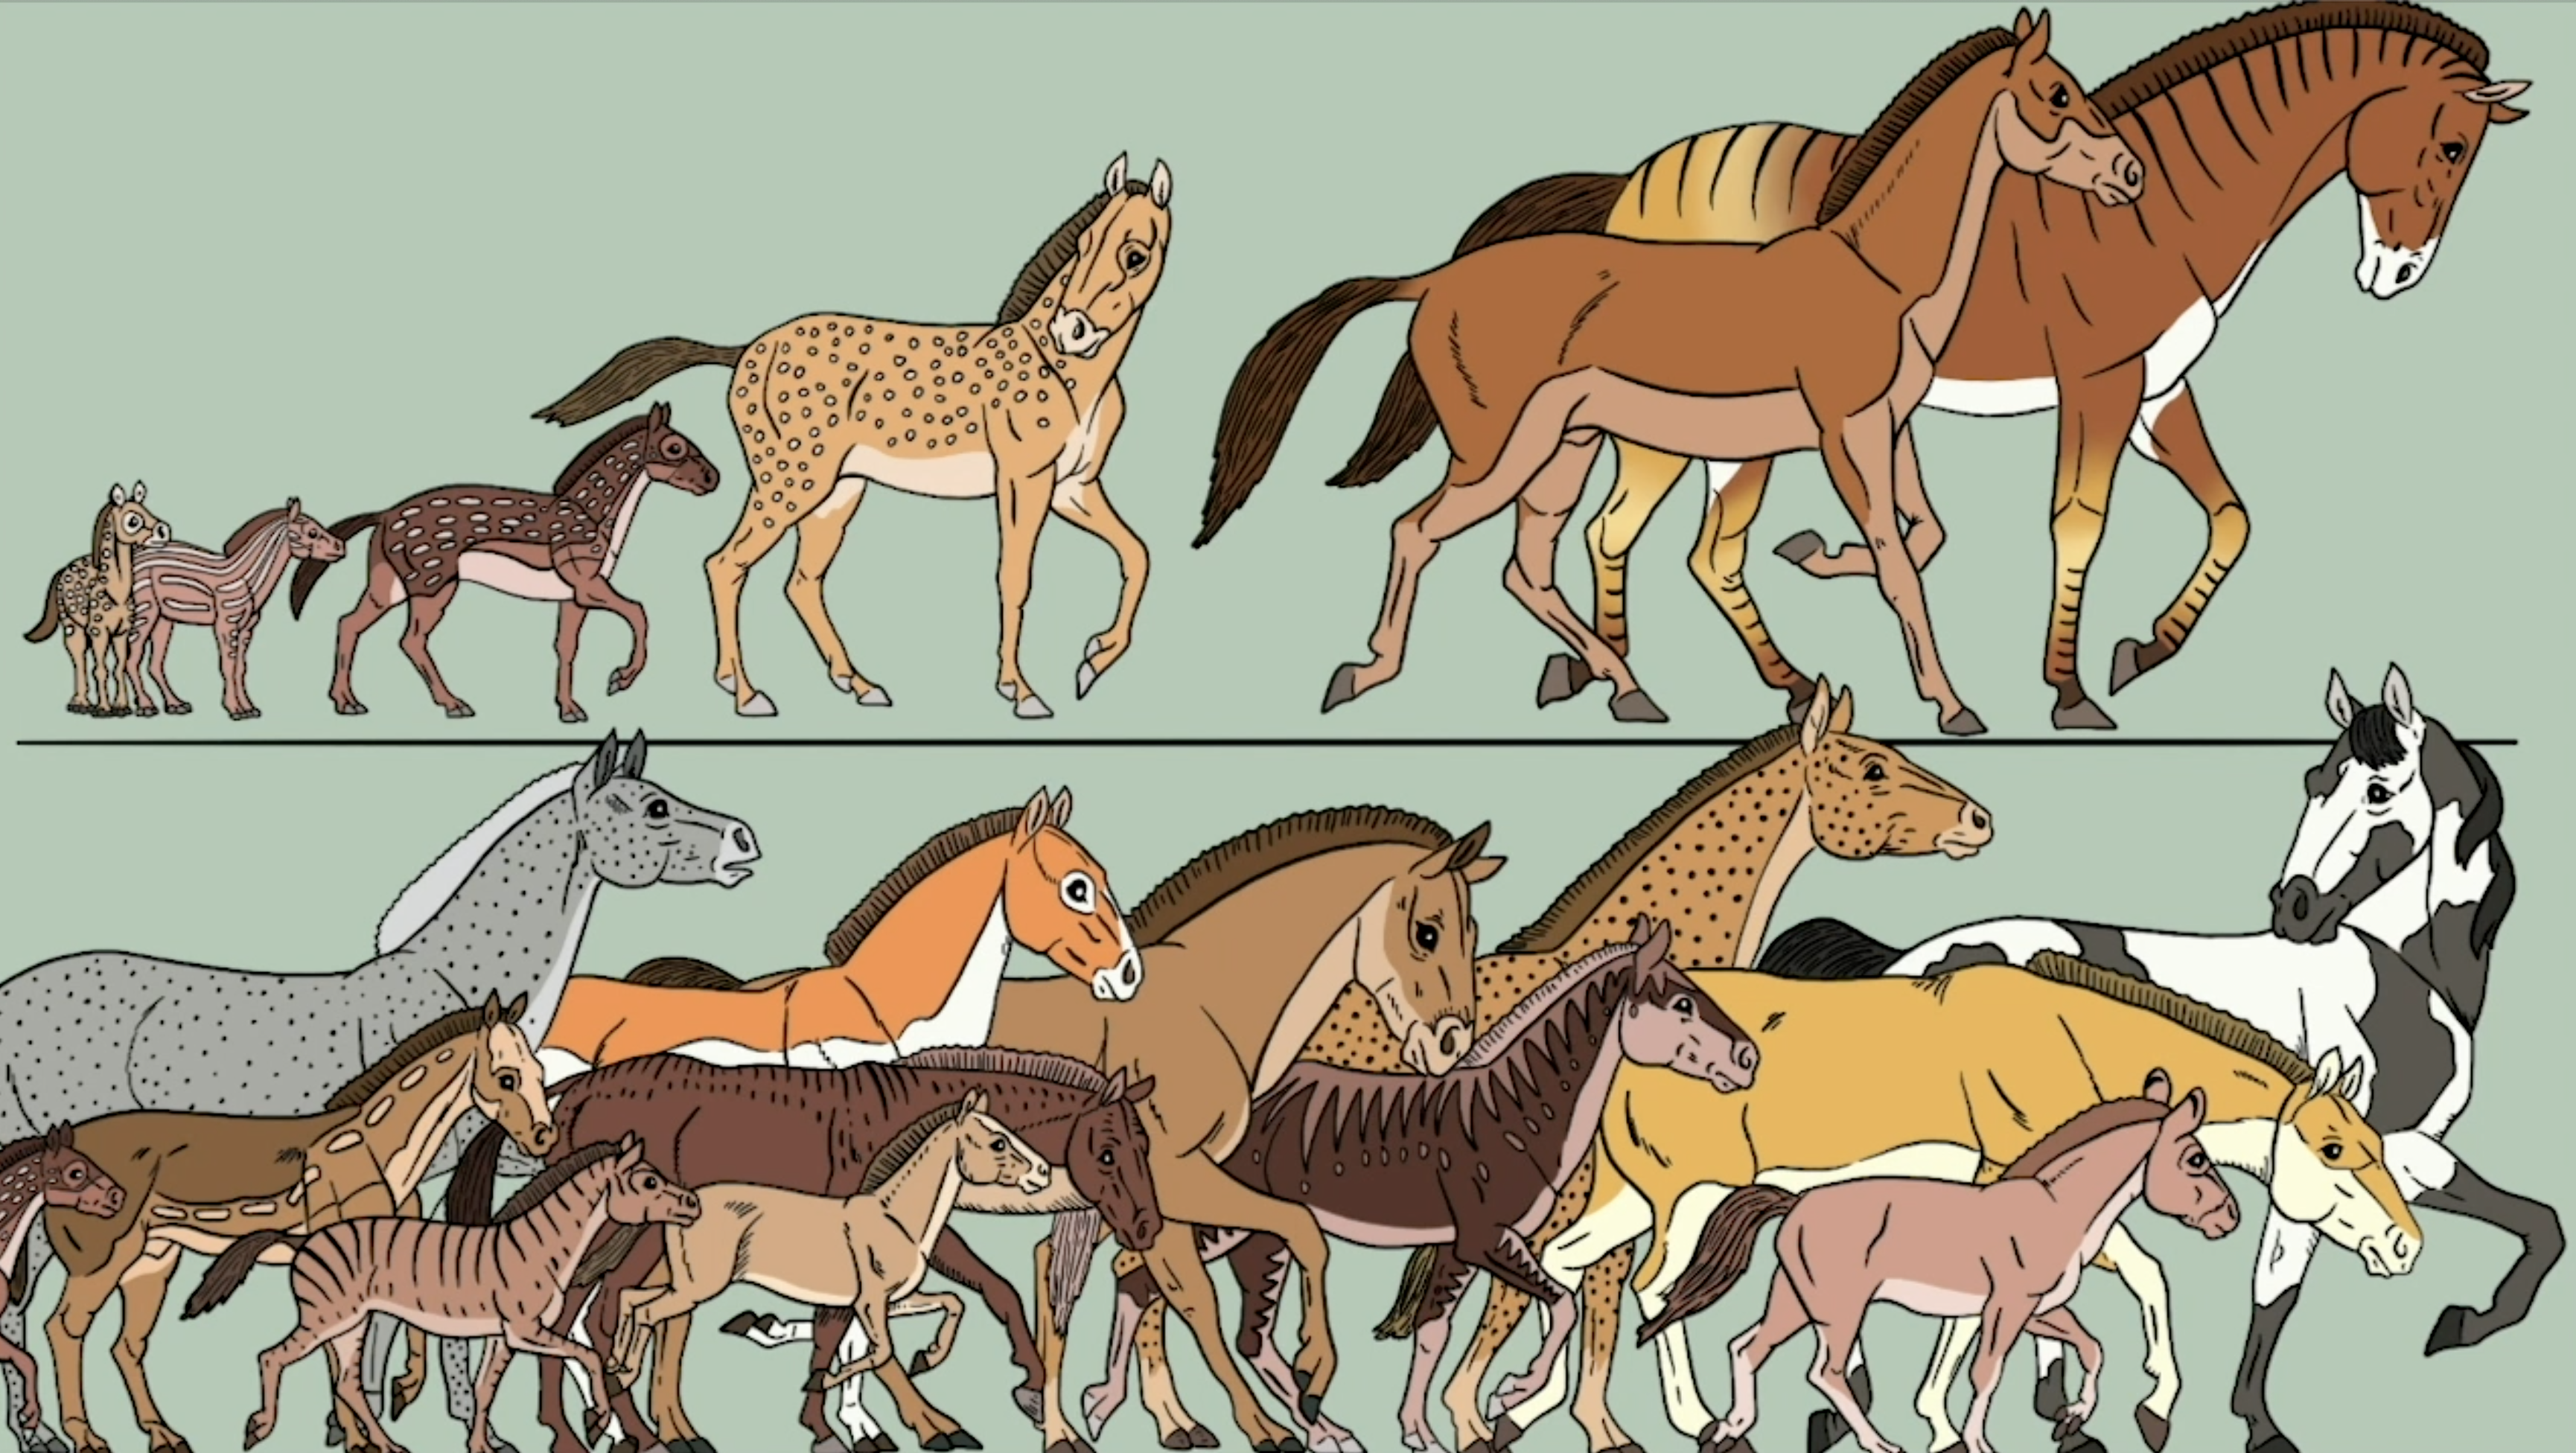 Patricia J. Wynne image of horse evolution